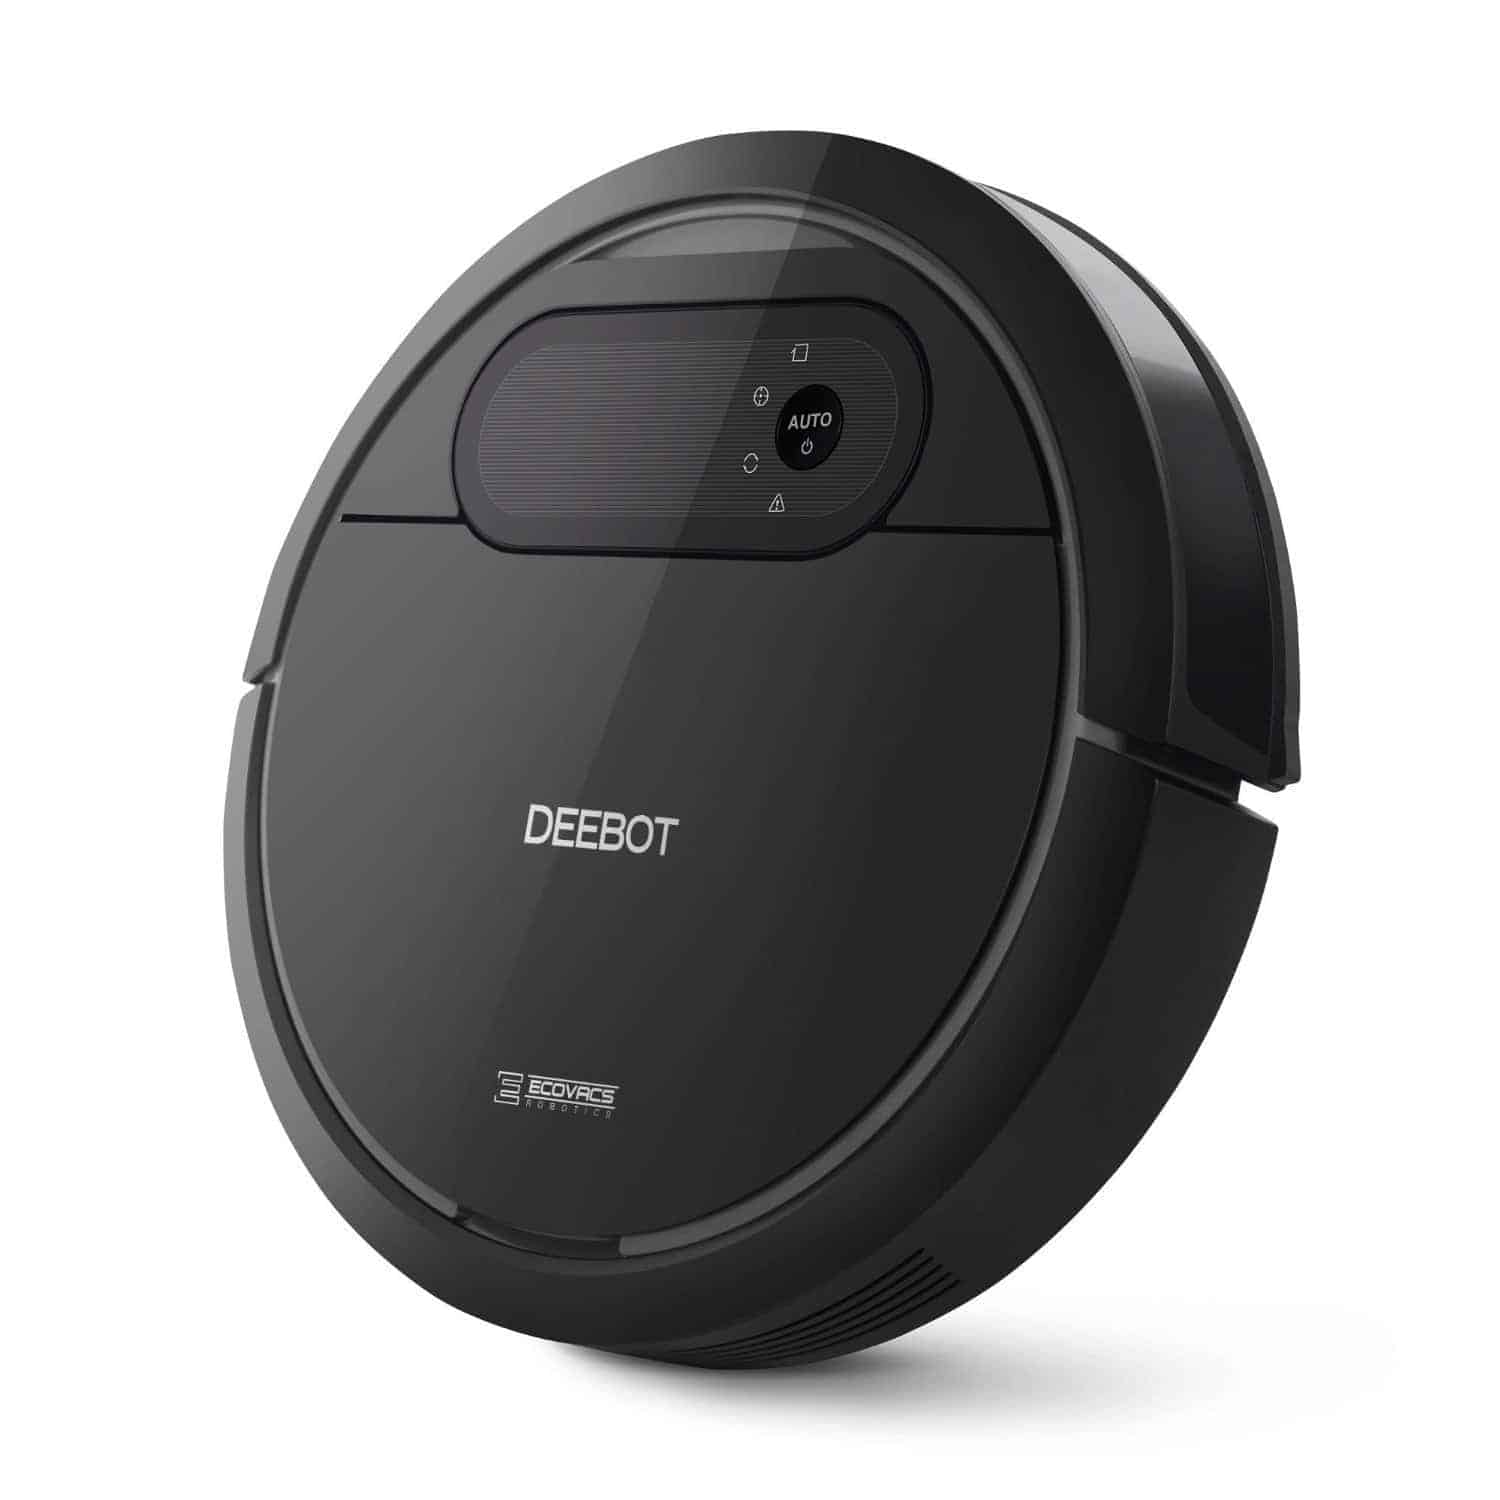 Best Robot Vacuum best robot vacuum cleaners - may 2017 | androidheadlines